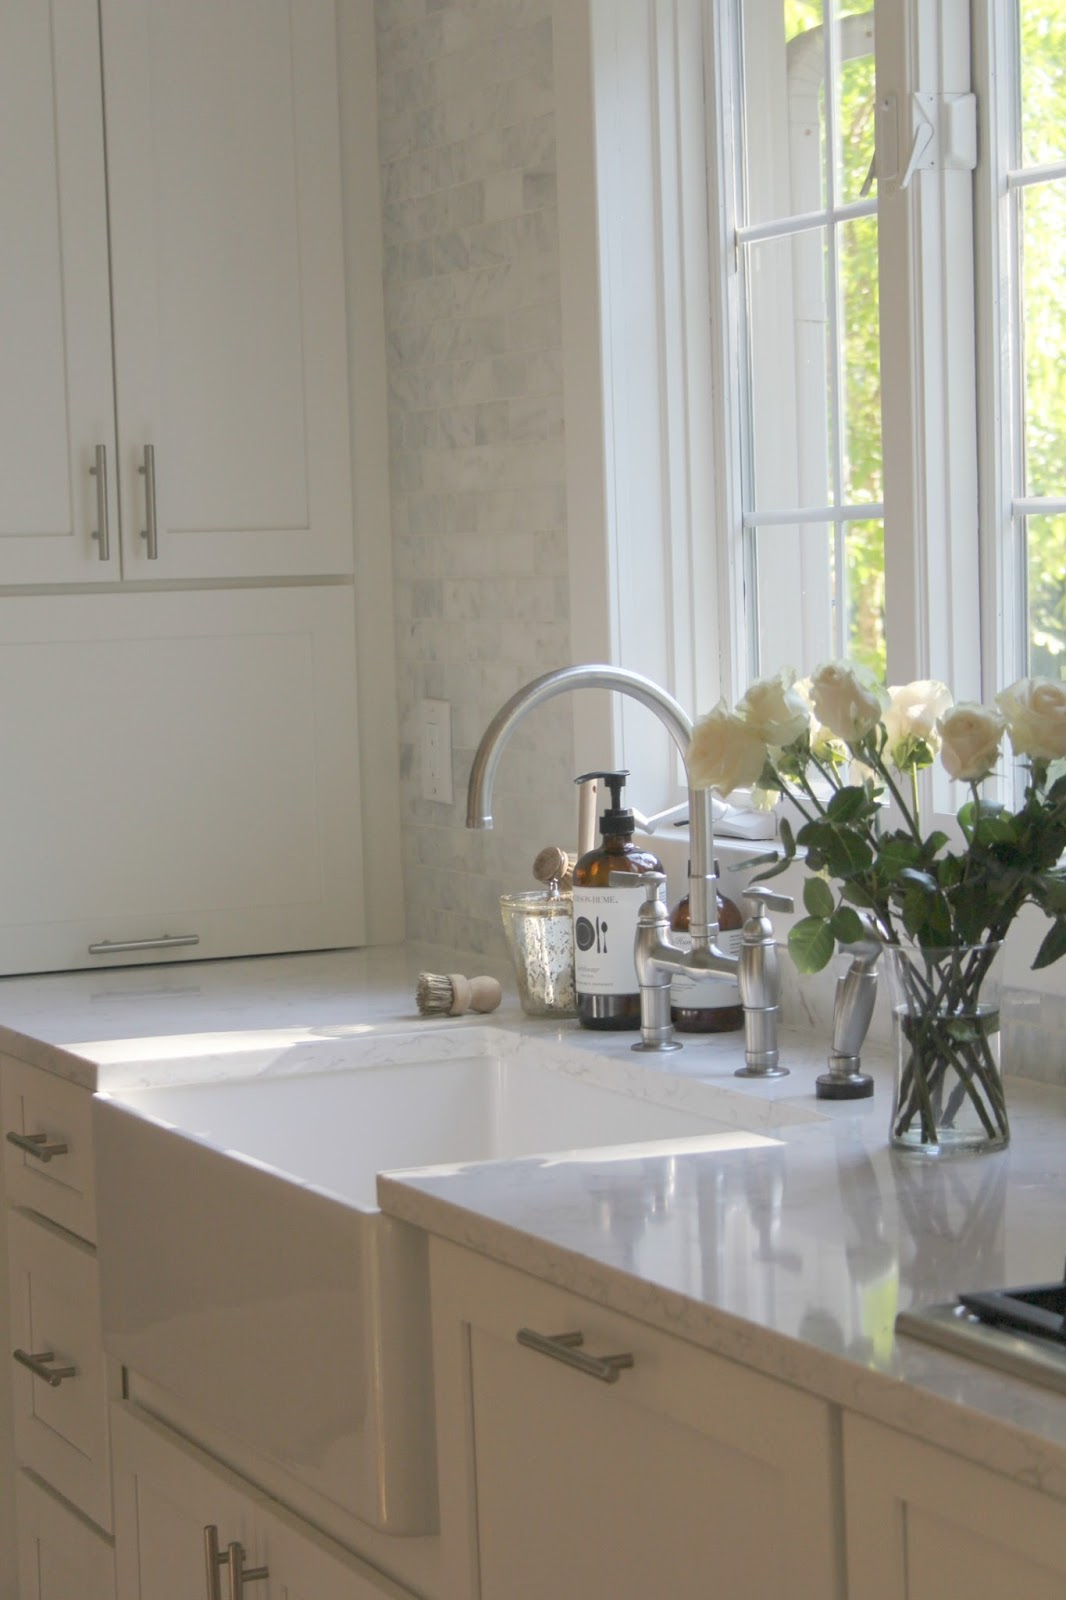 White classic kitchen with Shaker cabinets, marble subway tile, Viatera quartz countertop in Minuet, farm sink, and stainless bridge faucet. #hellolovelystudio #whitekitchen #farmsink #modernfarmhouse